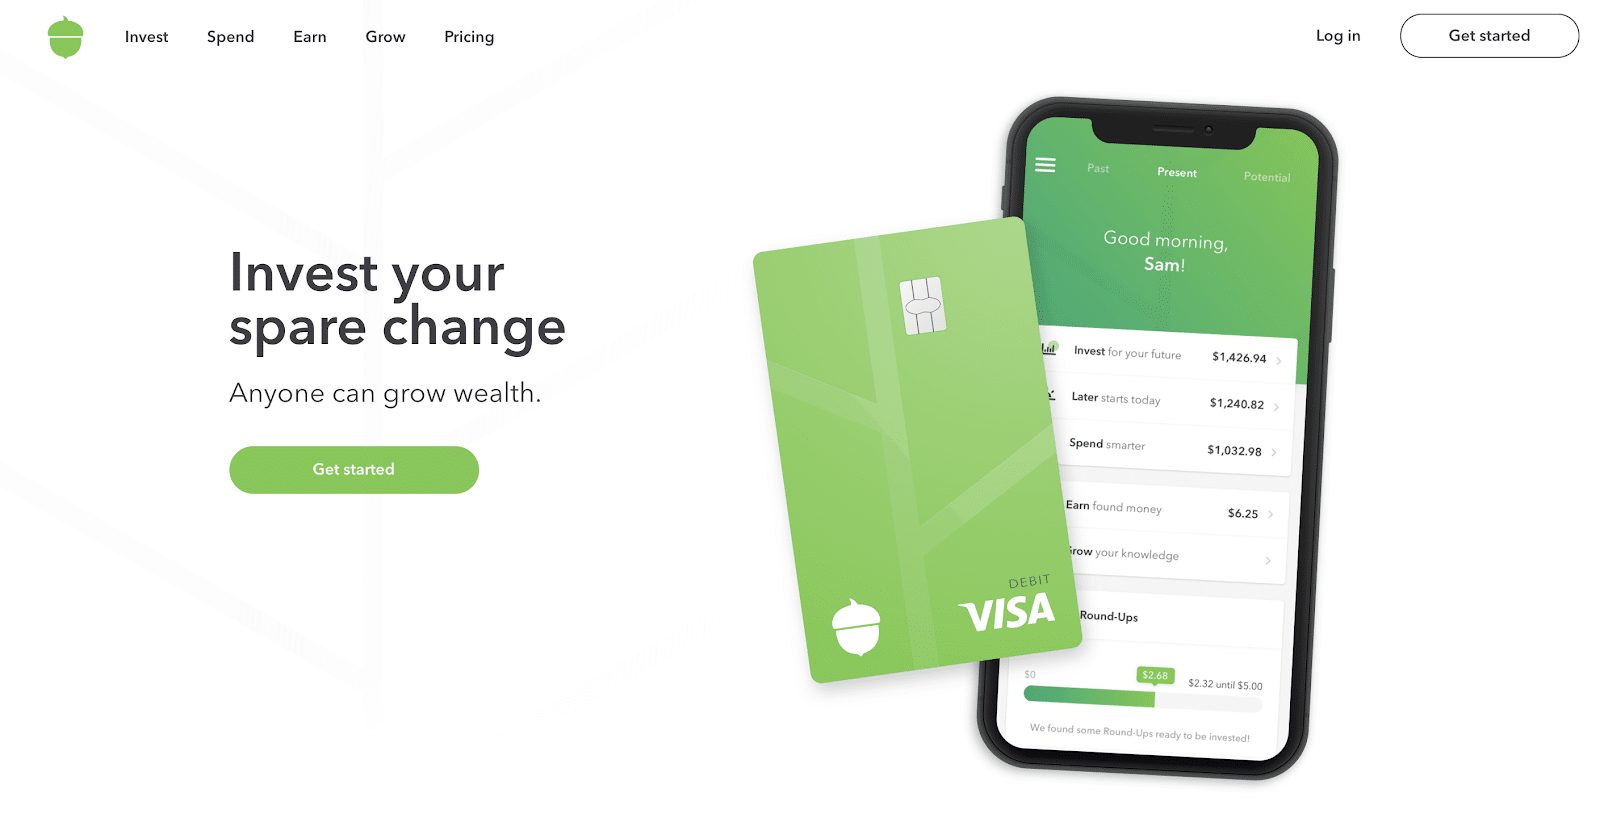 acorns mobile phone and debit card